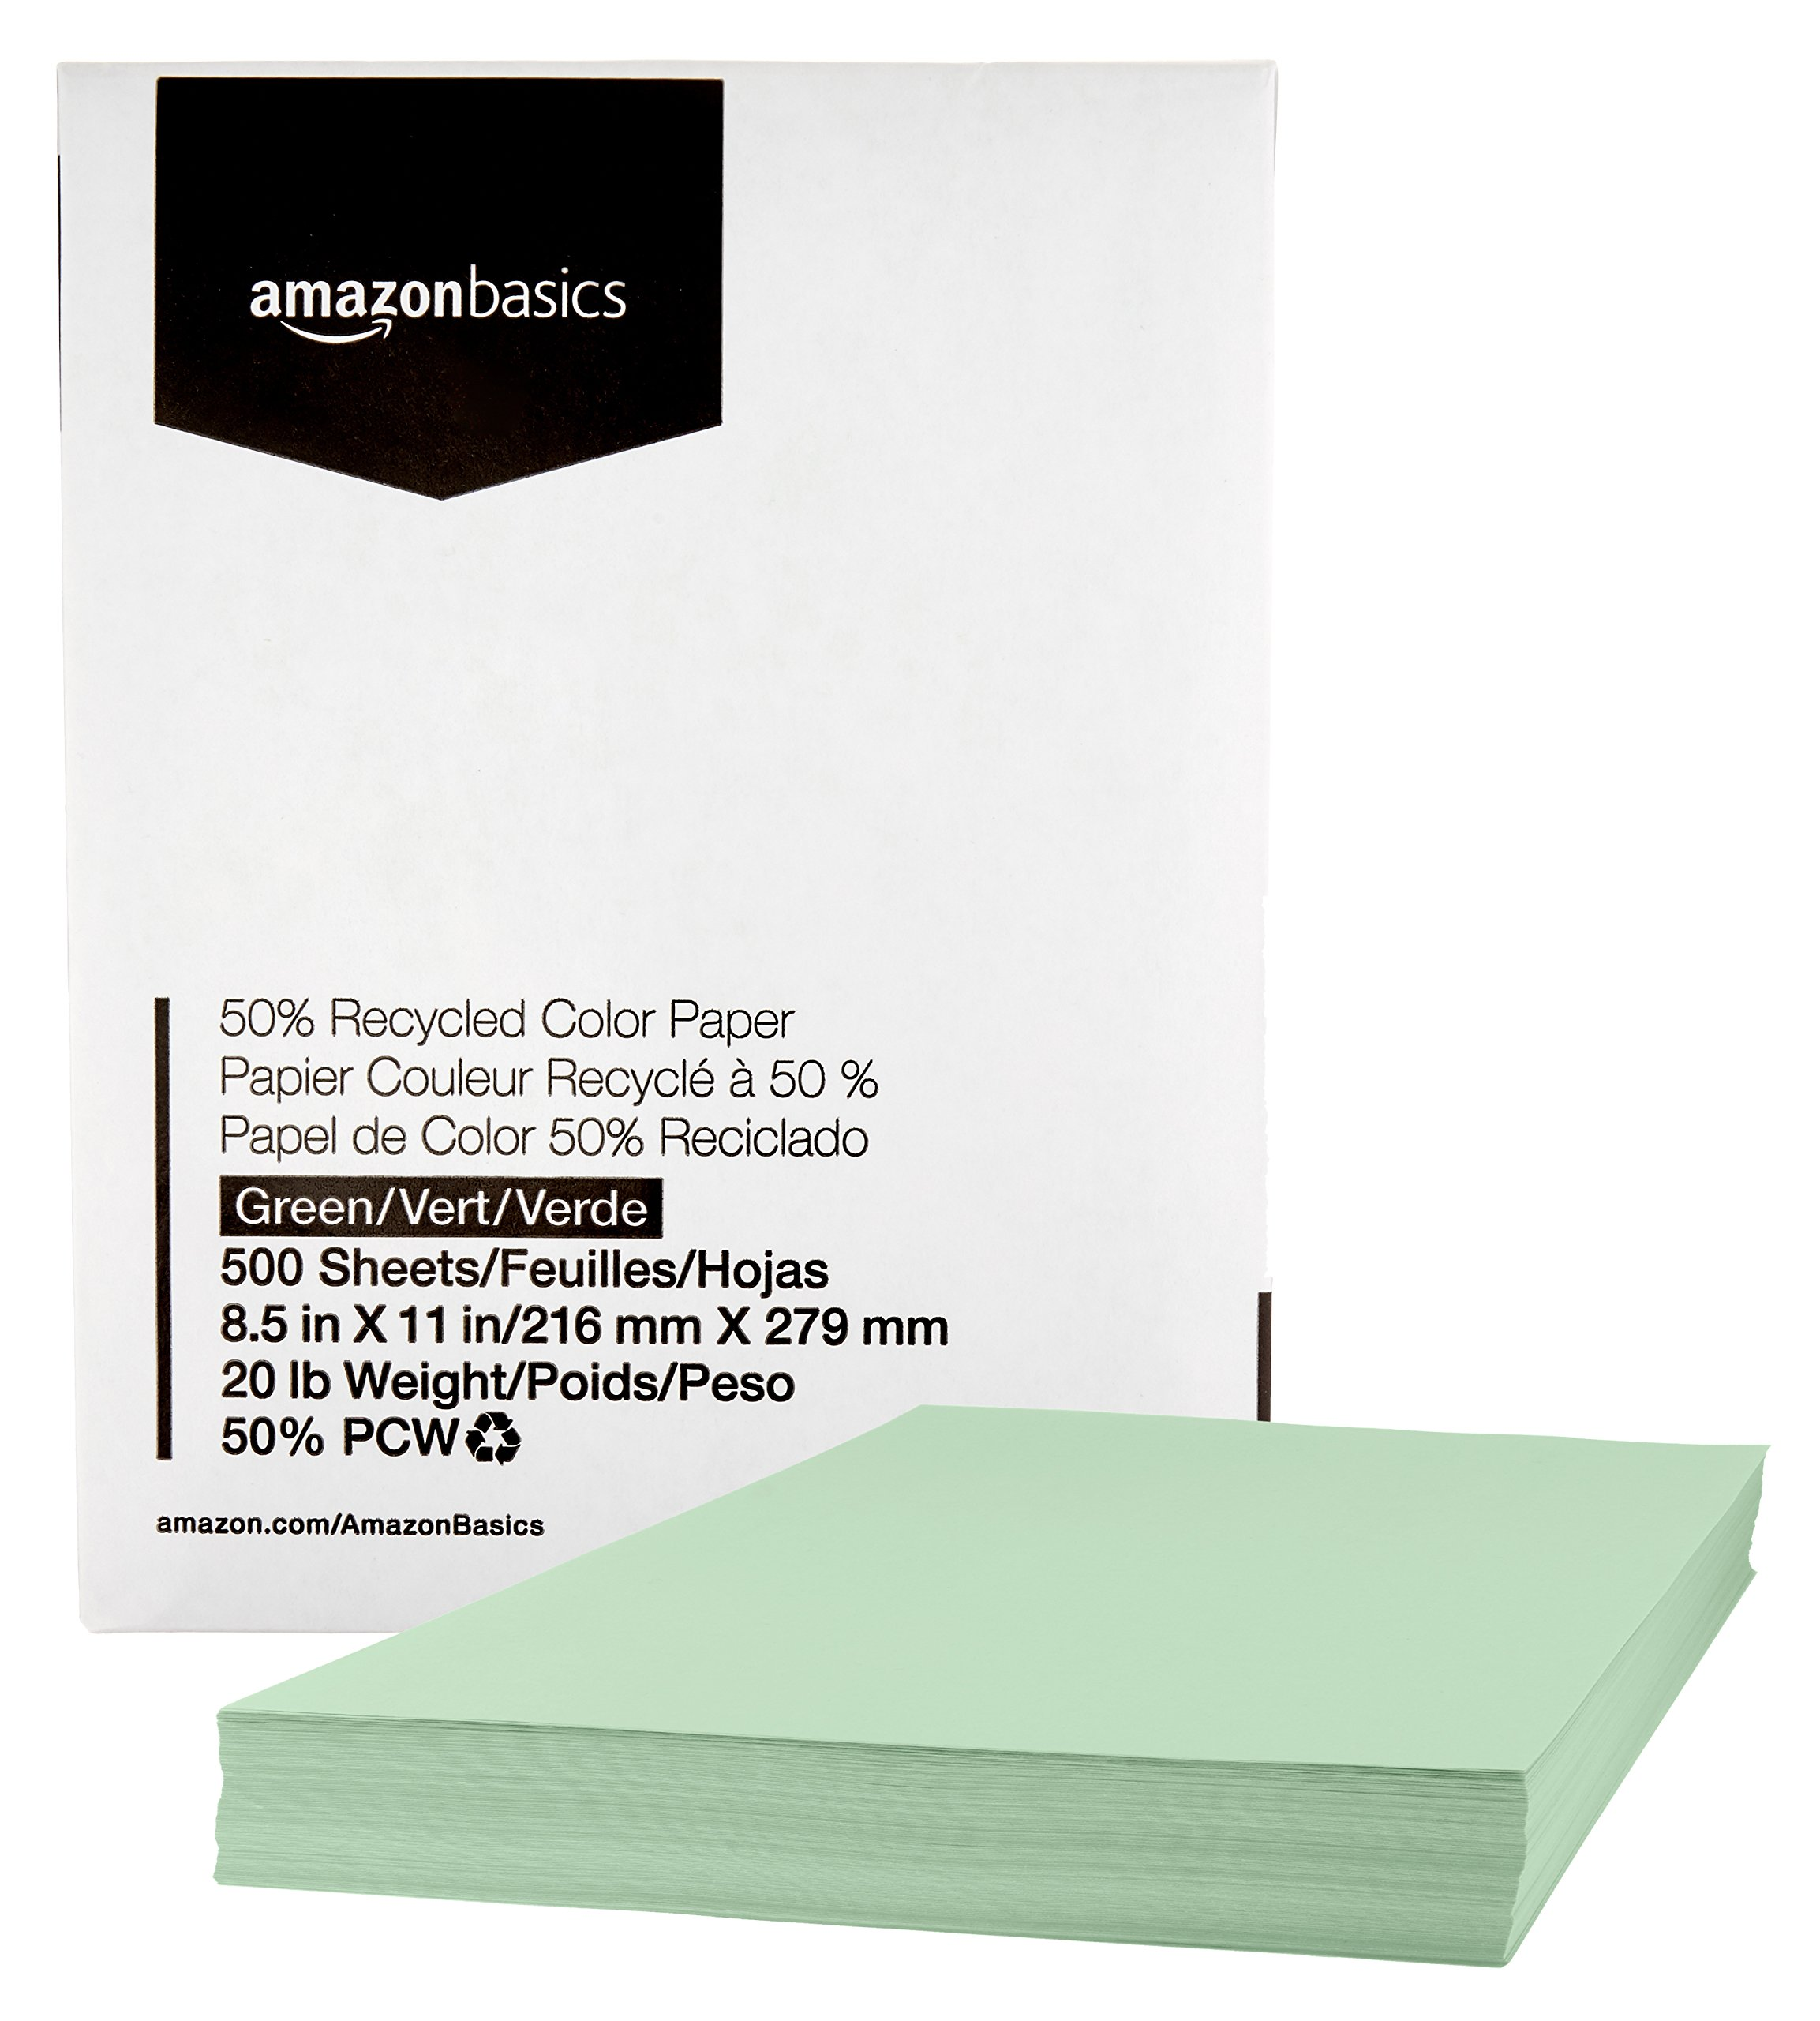 Amazon Basics 50% Recycled Color Printer Paper - Green, 8.5 x 11 Inches, 1 Ream (500 Sheets)